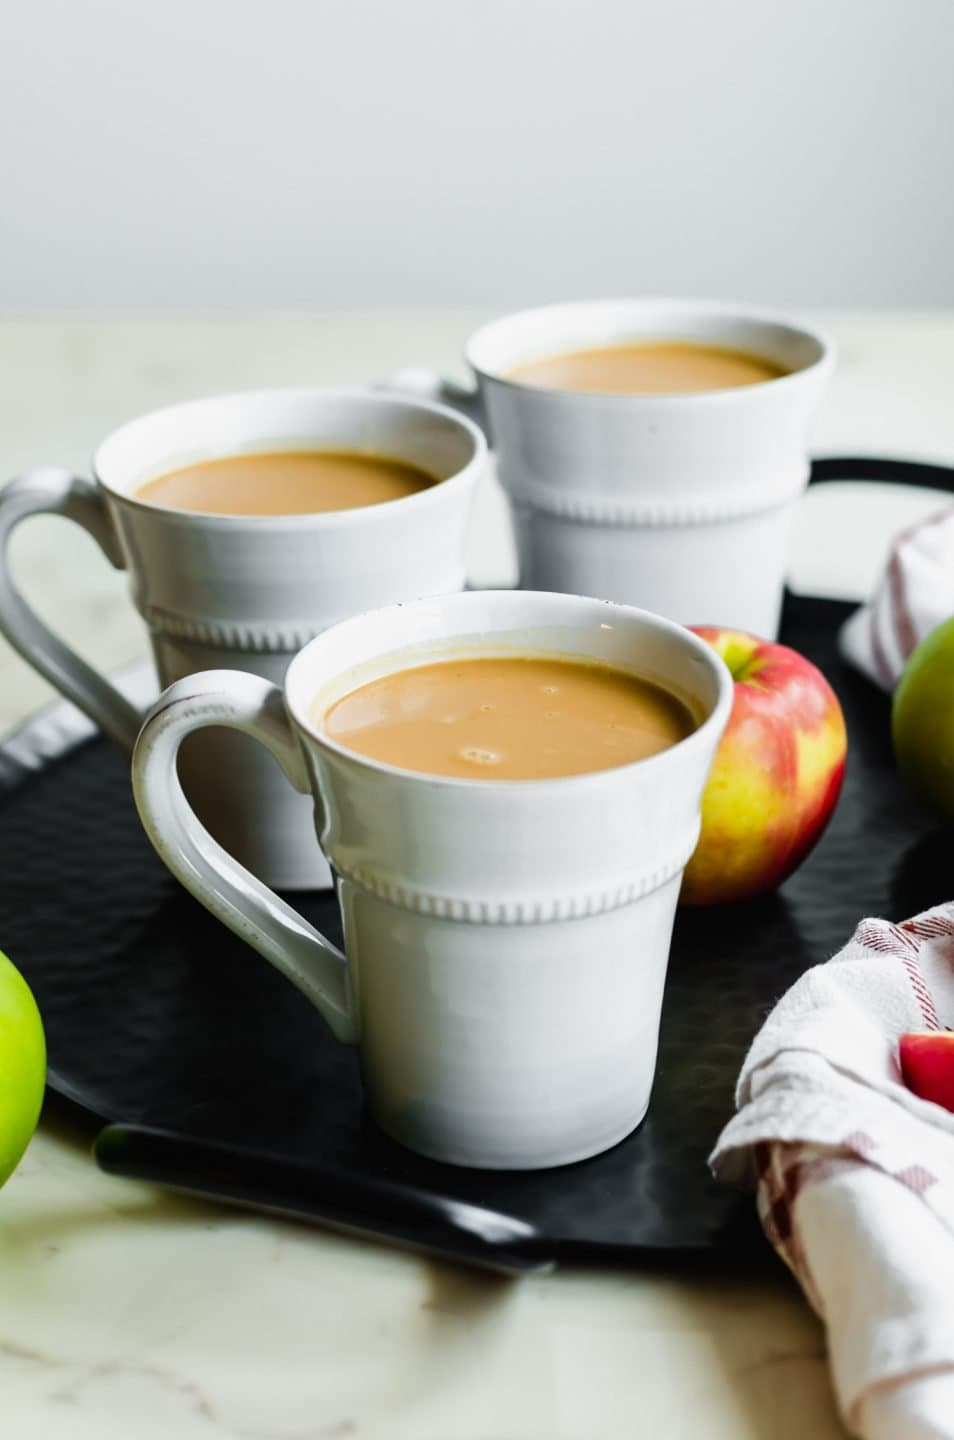 A black iron tray with three white mugs filled with salted caramel apple cider and apples on the side.